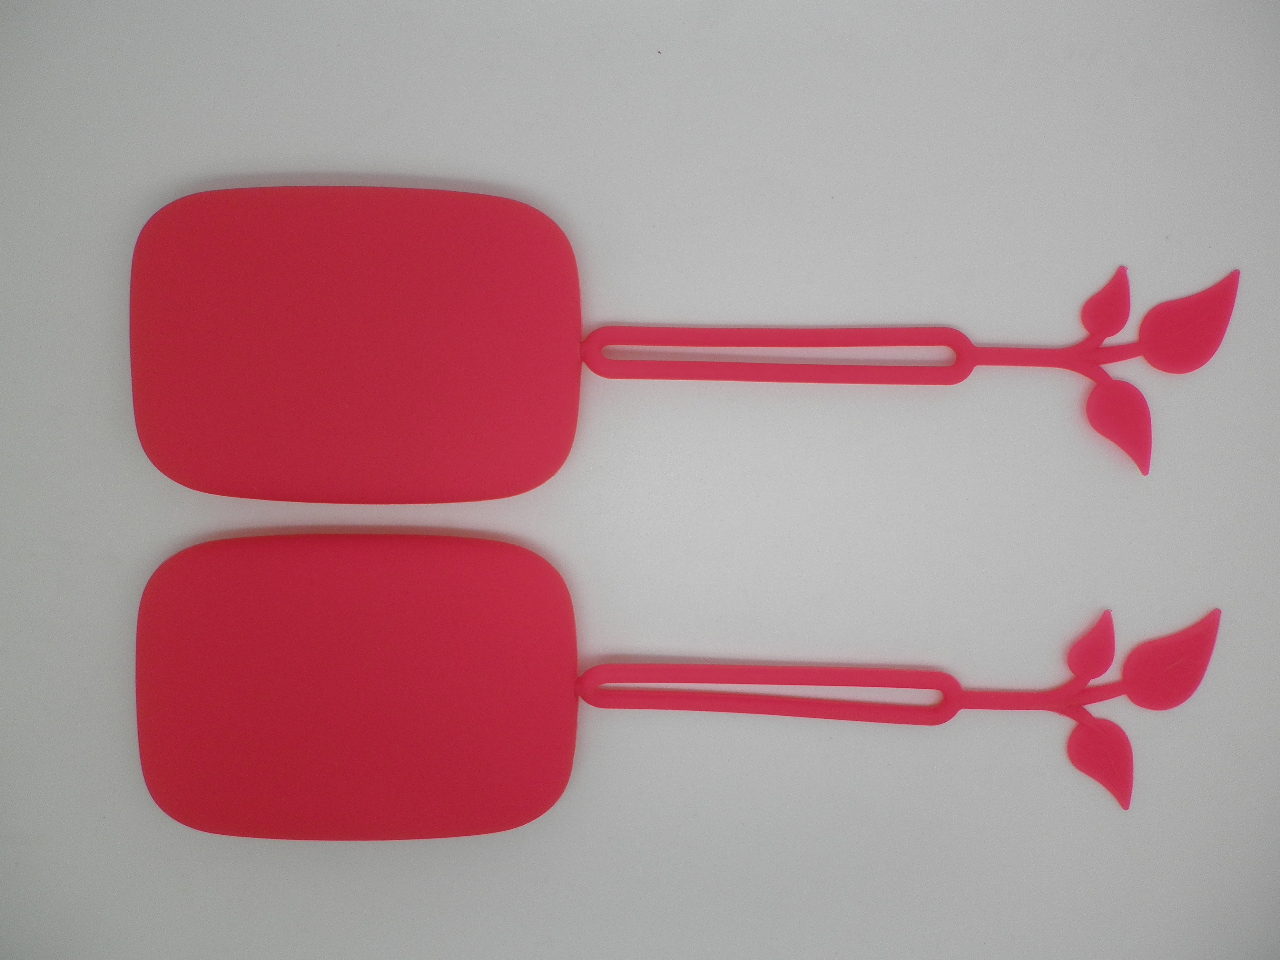 http://www.refinehksilicone.cn/data/images/product/20180417111013_694.JPG